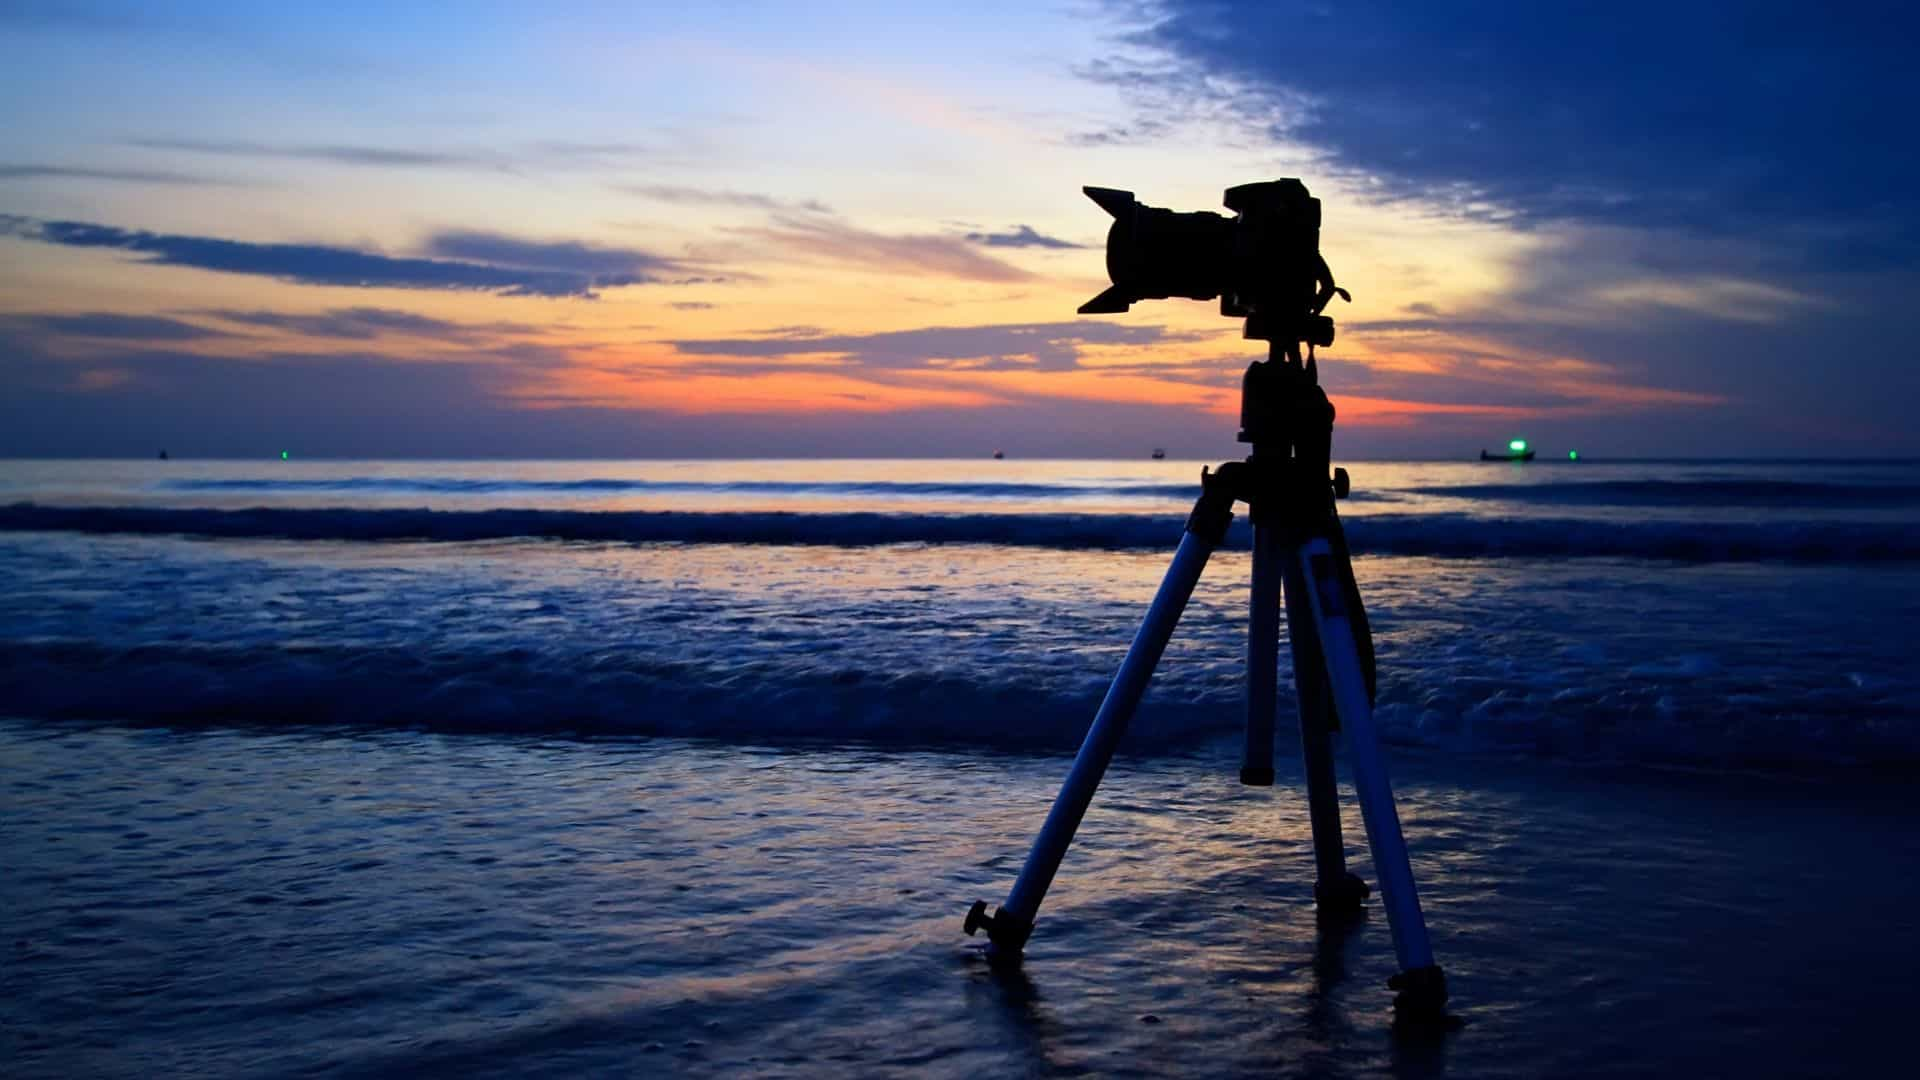 tripod for beach photography